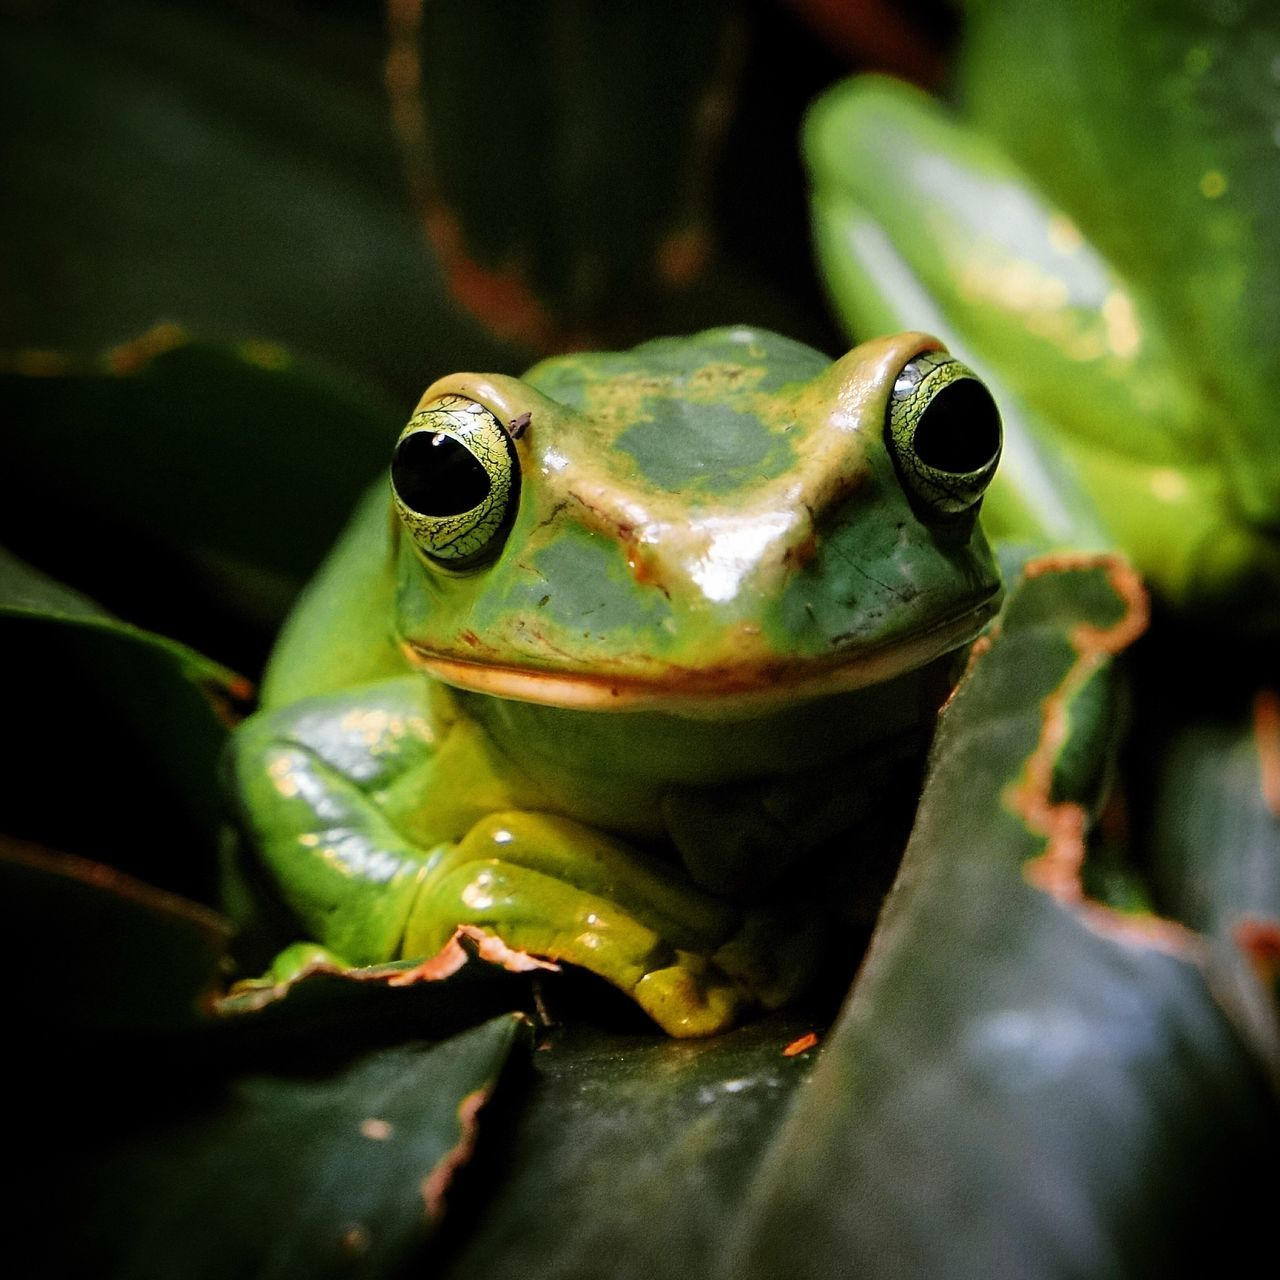 One Animal Animal Themes Frog Looking At Camera Green Color Animals In The Wild Nature Animal Wildlife Close-up No People Outdoors Day Portrait Wildlife Wildlife & Nature Nature Photography Animal Head  Animal Photography Greenfrog Nature_collection Animal_collection